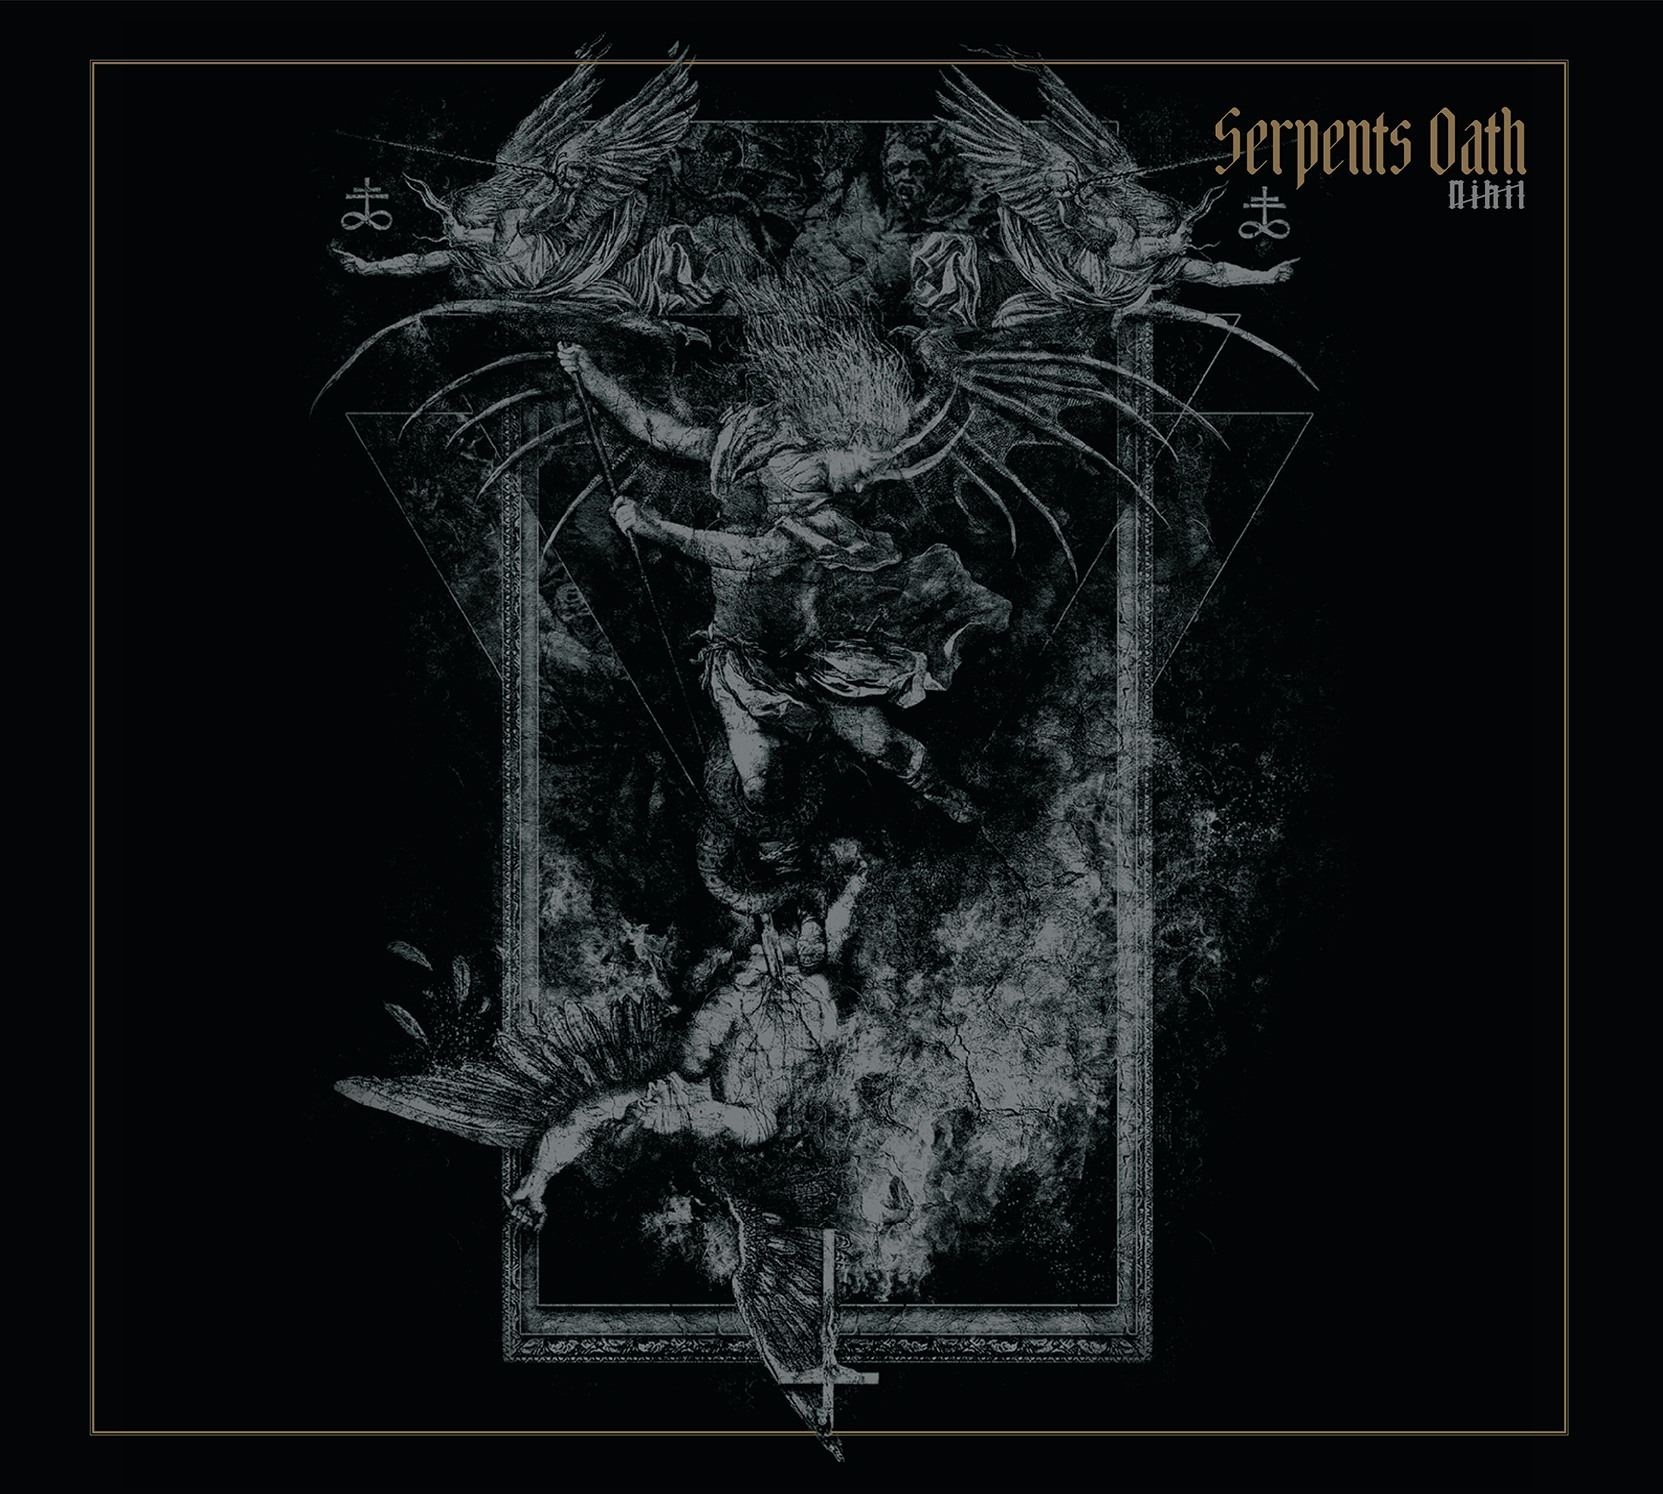 serpents oath nihil cover artwork